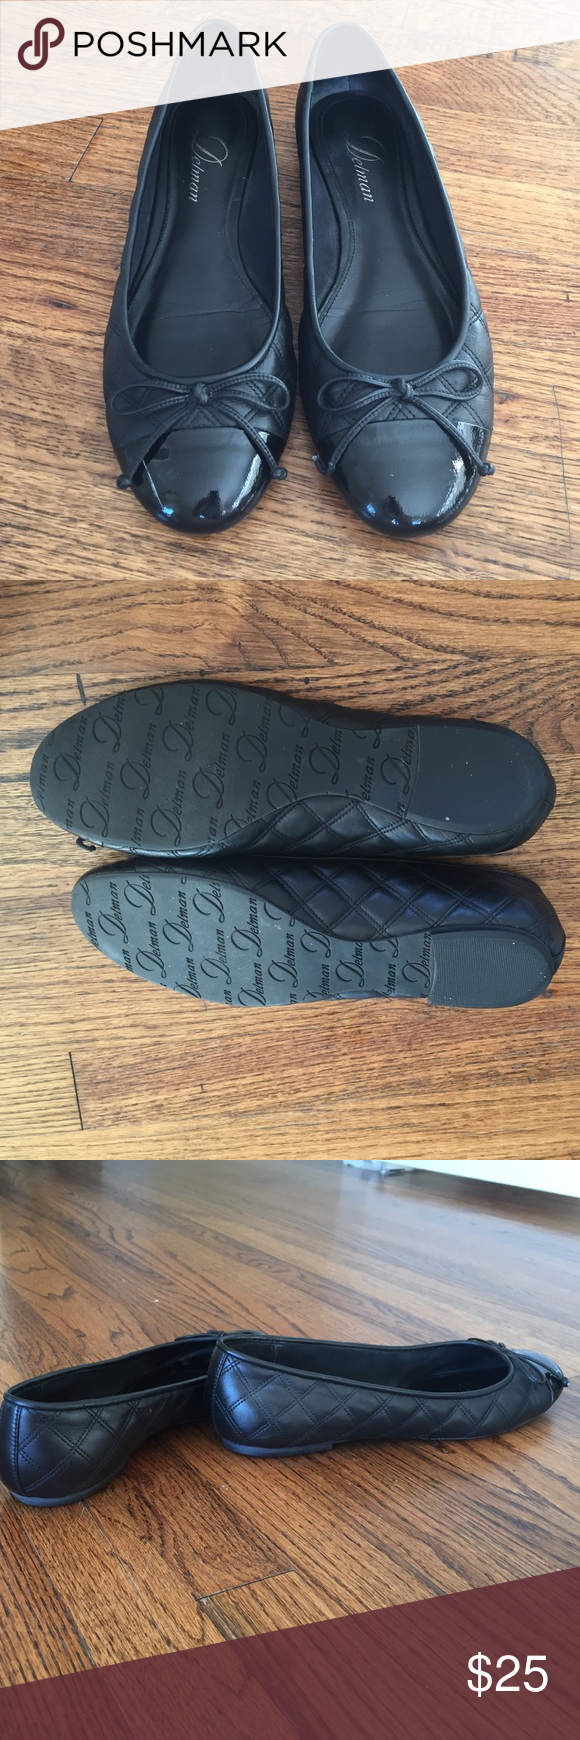 Black Delman cap toe flats Black flats - toe is patent leather, sides are quilted leather. Worn only a handful of times (they were too big for me) - soles are in great condition. Scratch on toe of right shoe - partially obscured by bows.  Size 6.5, run slightly large. Delman Shoes Flats & Loafers